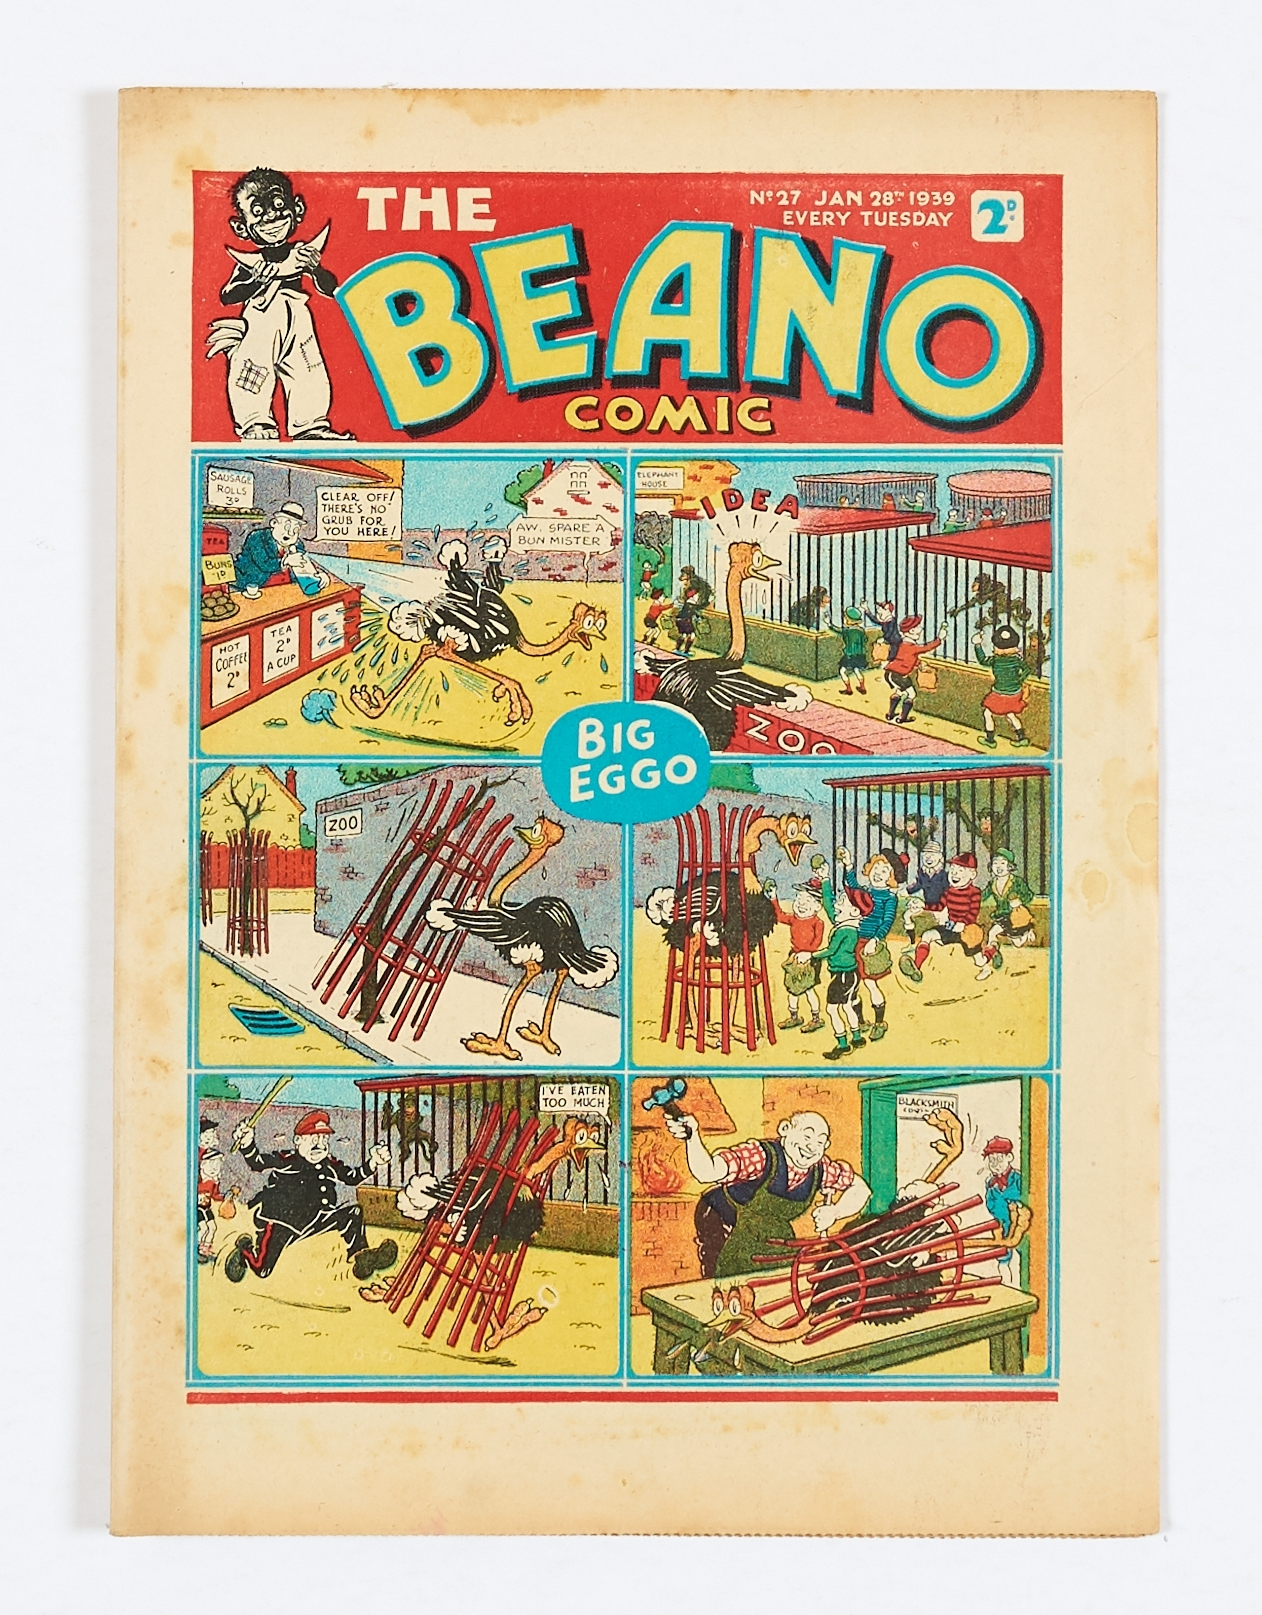 Lot 20 - Beano No 27 (1939). Bright covers, cream pages with light foxing blemishes to some page margins. 2